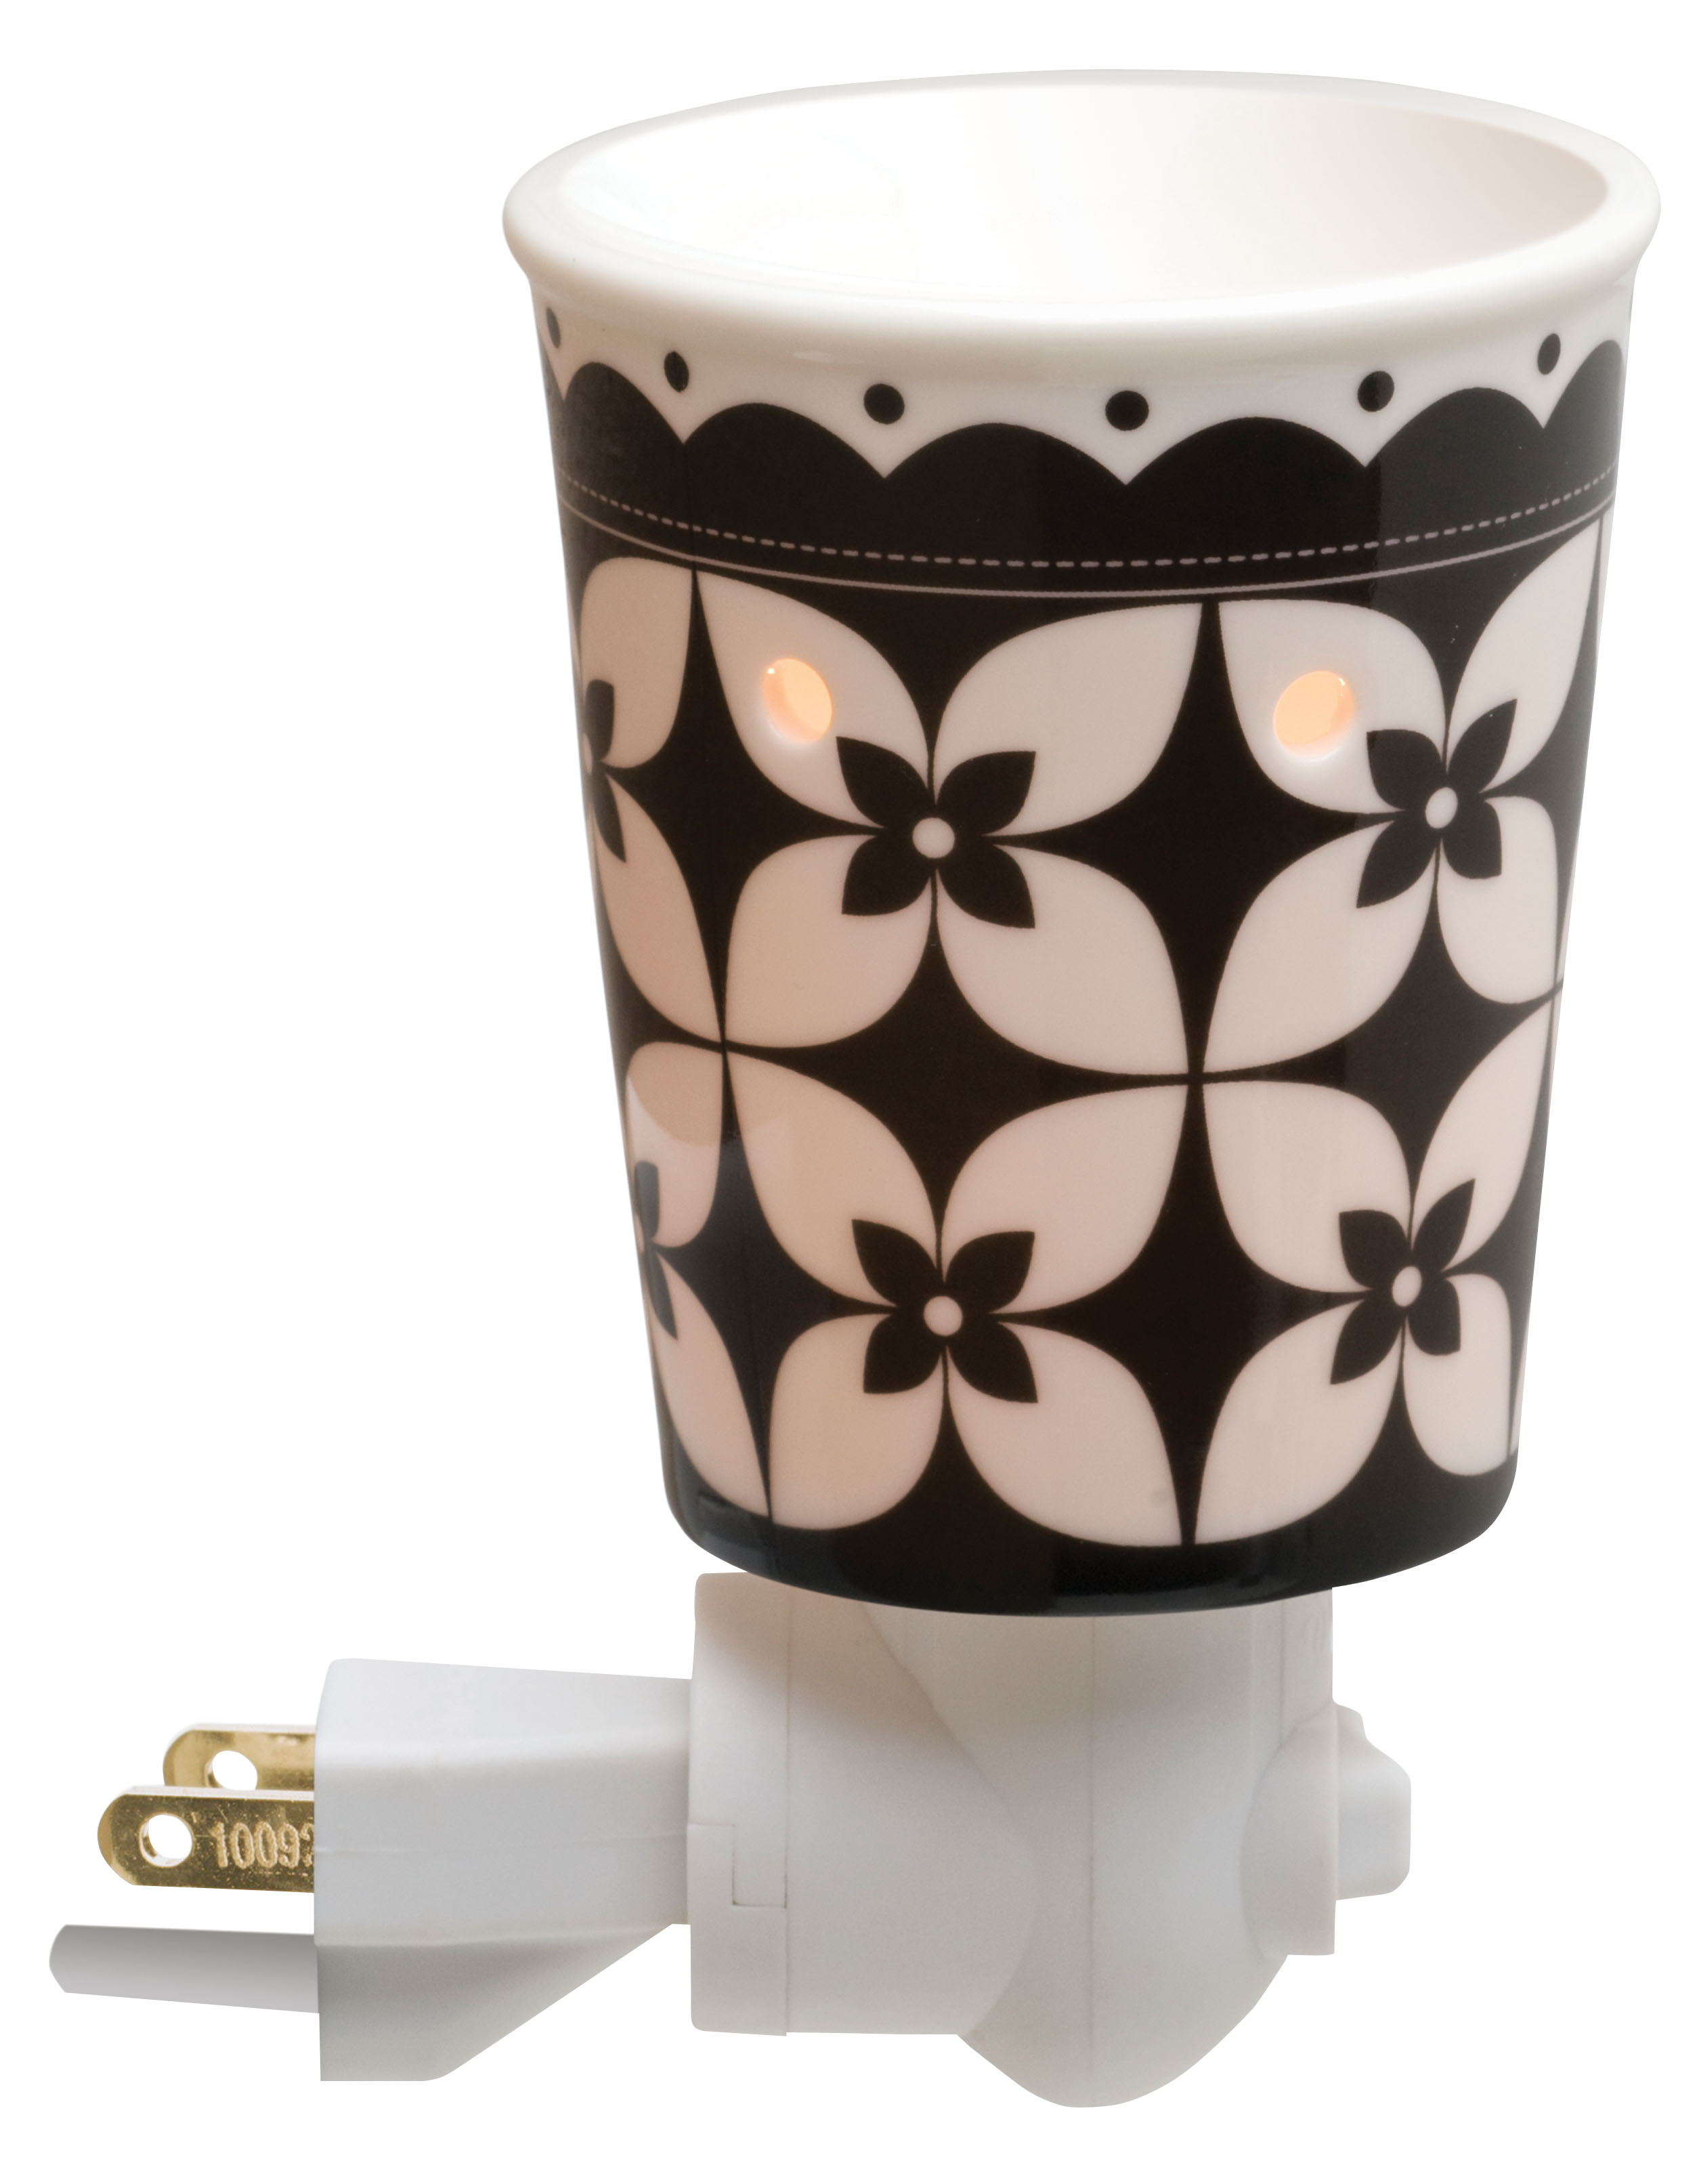 Scentsy Plug In Questions About Scentsy Plug In Warmers